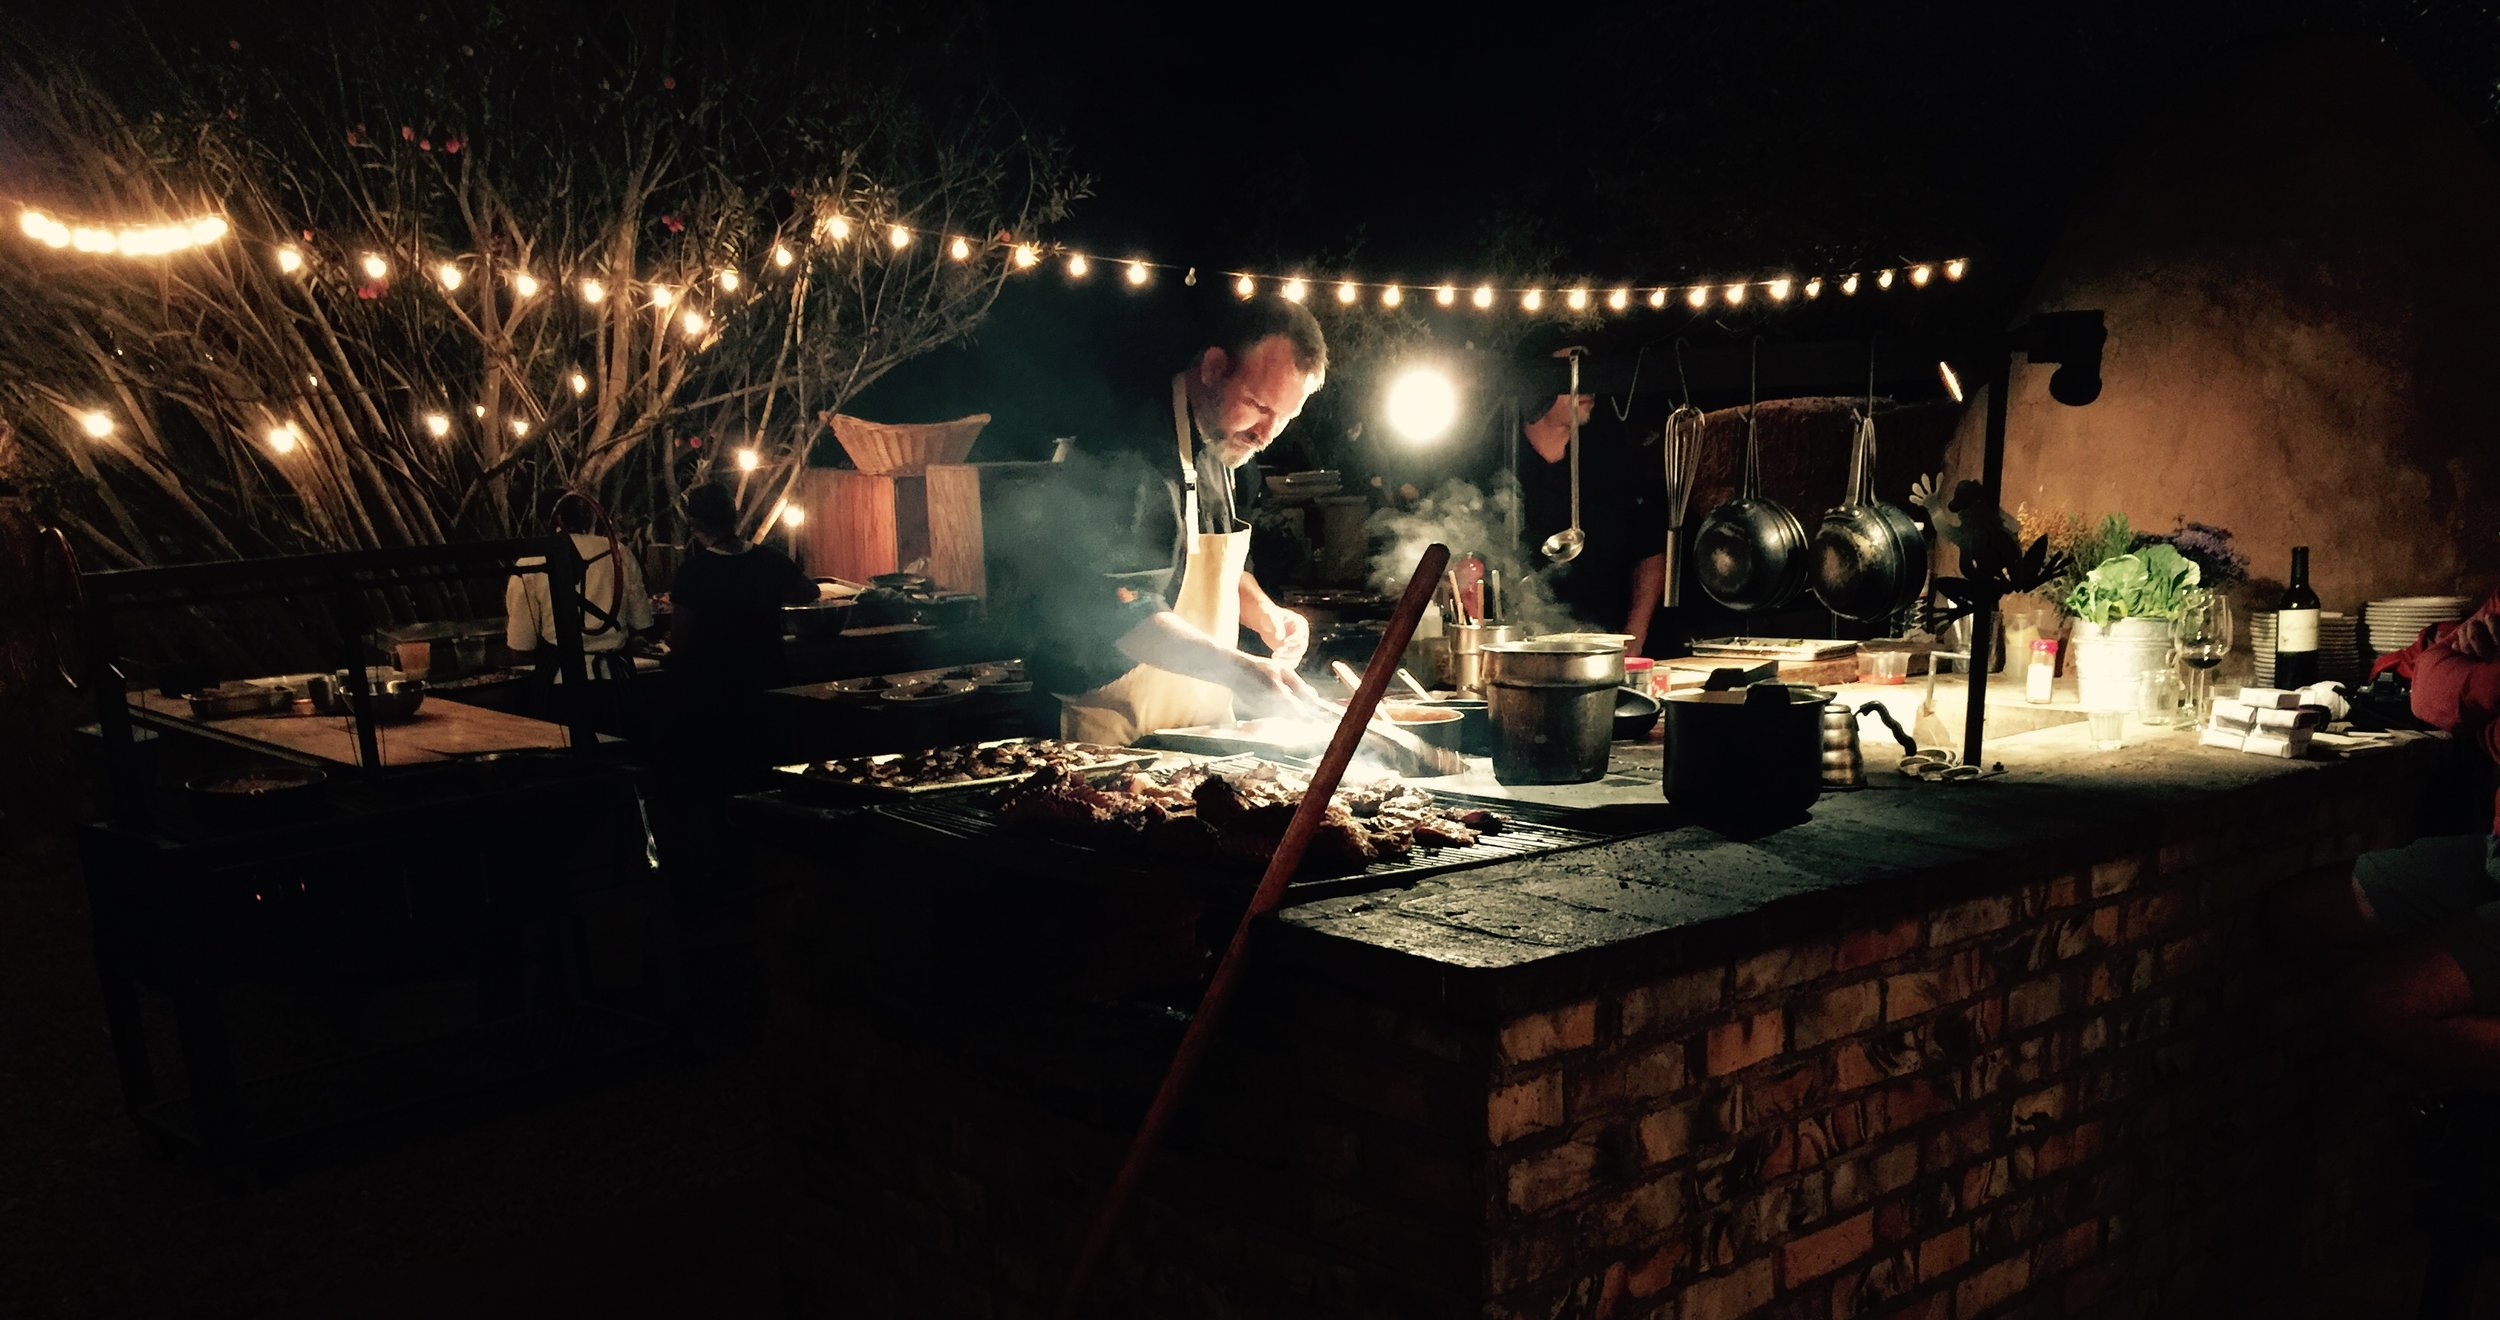 Drew cooking at night in his outdoor kitchen at Deckman's.